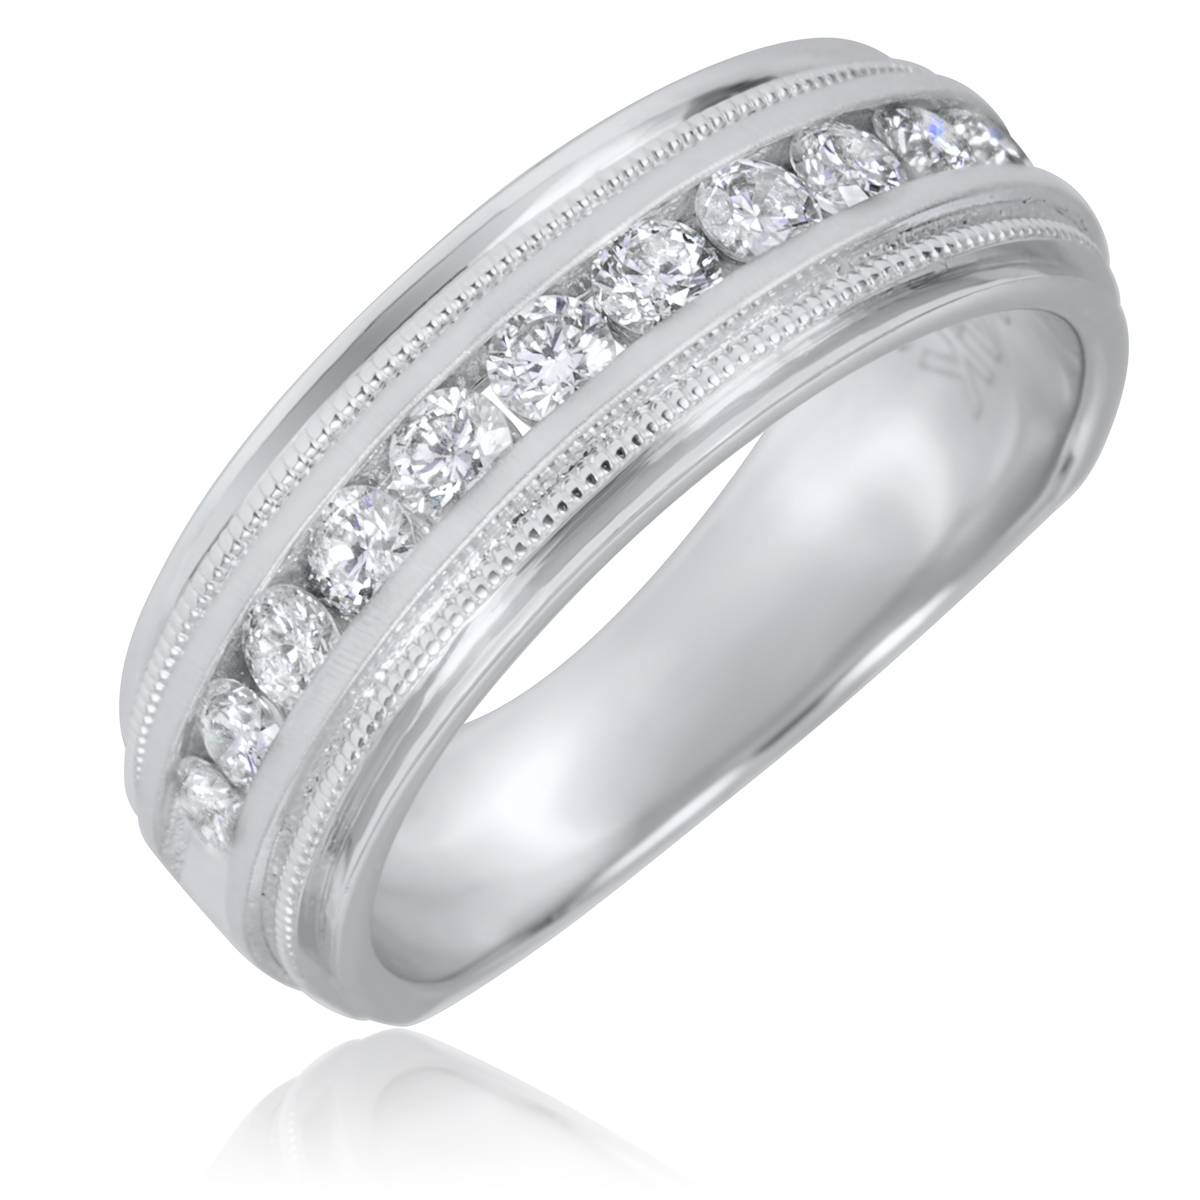 Wedding Rings : White Gold Mens Wedding Band With Black Diamonds Regarding Mens Wedding Rings With Diamonds (View 14 of 15)